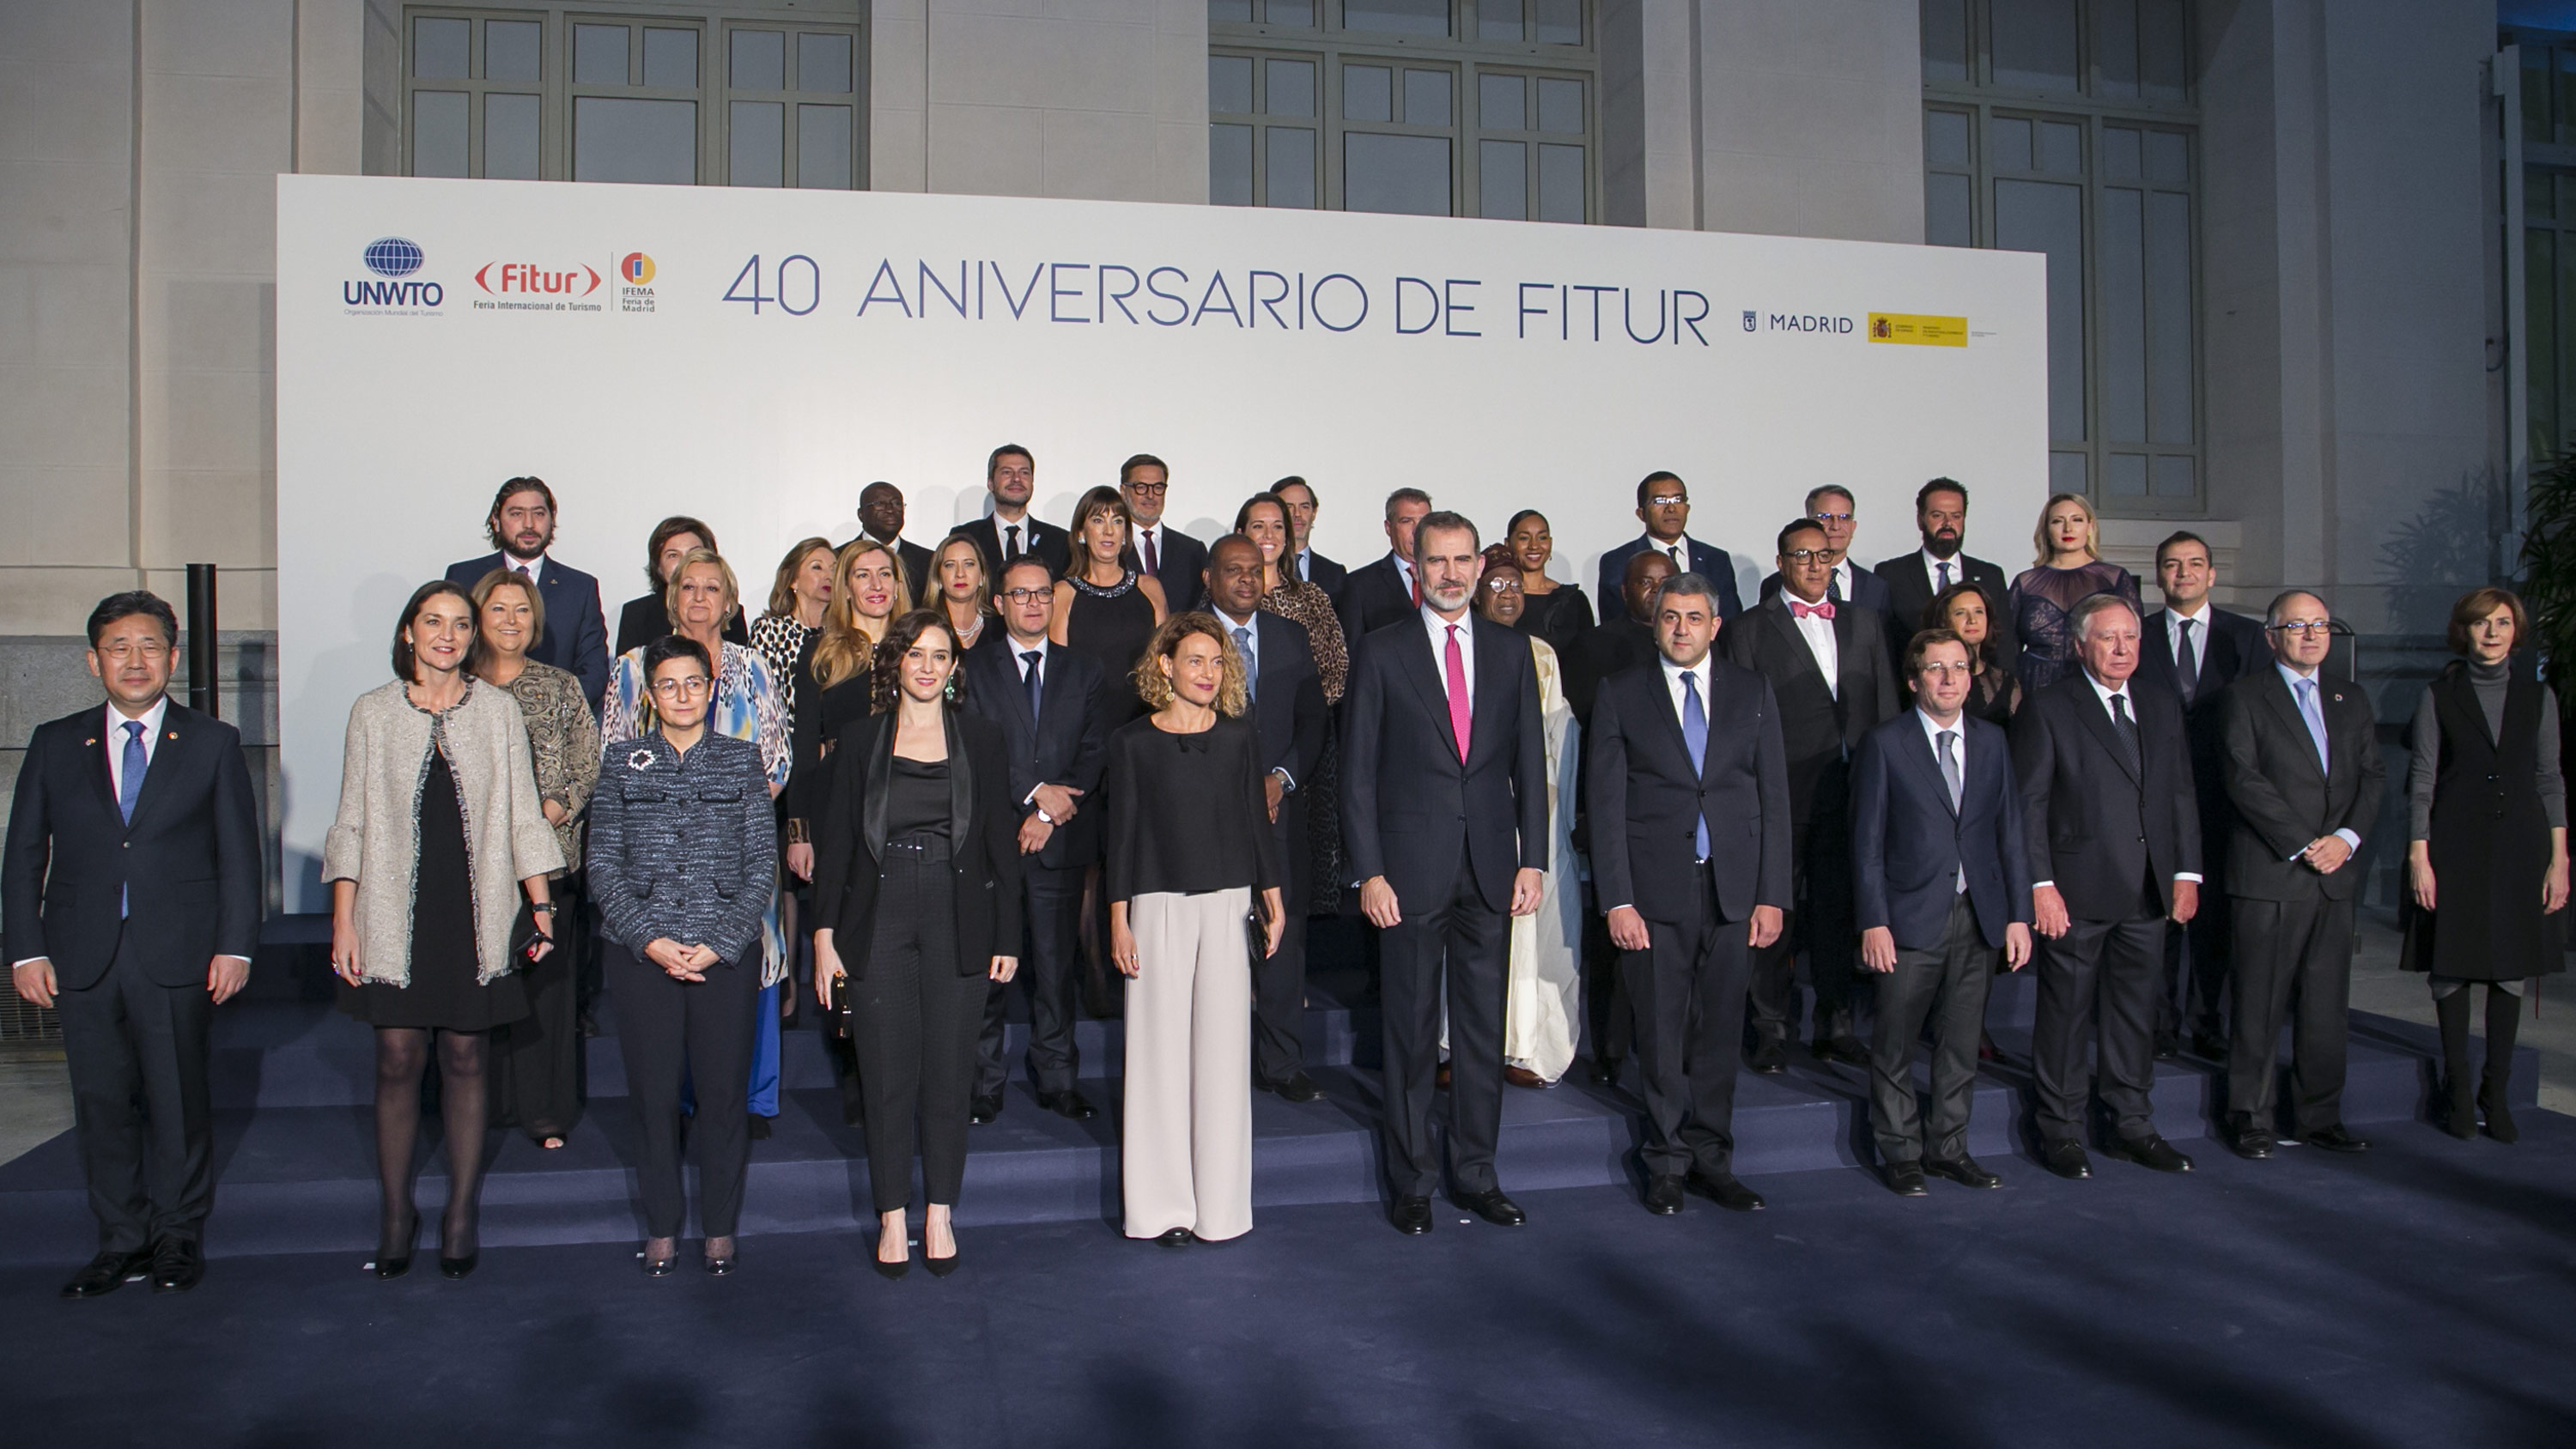 King of Spain Signals Strong Support For UNWTO's Tourism Ambitions